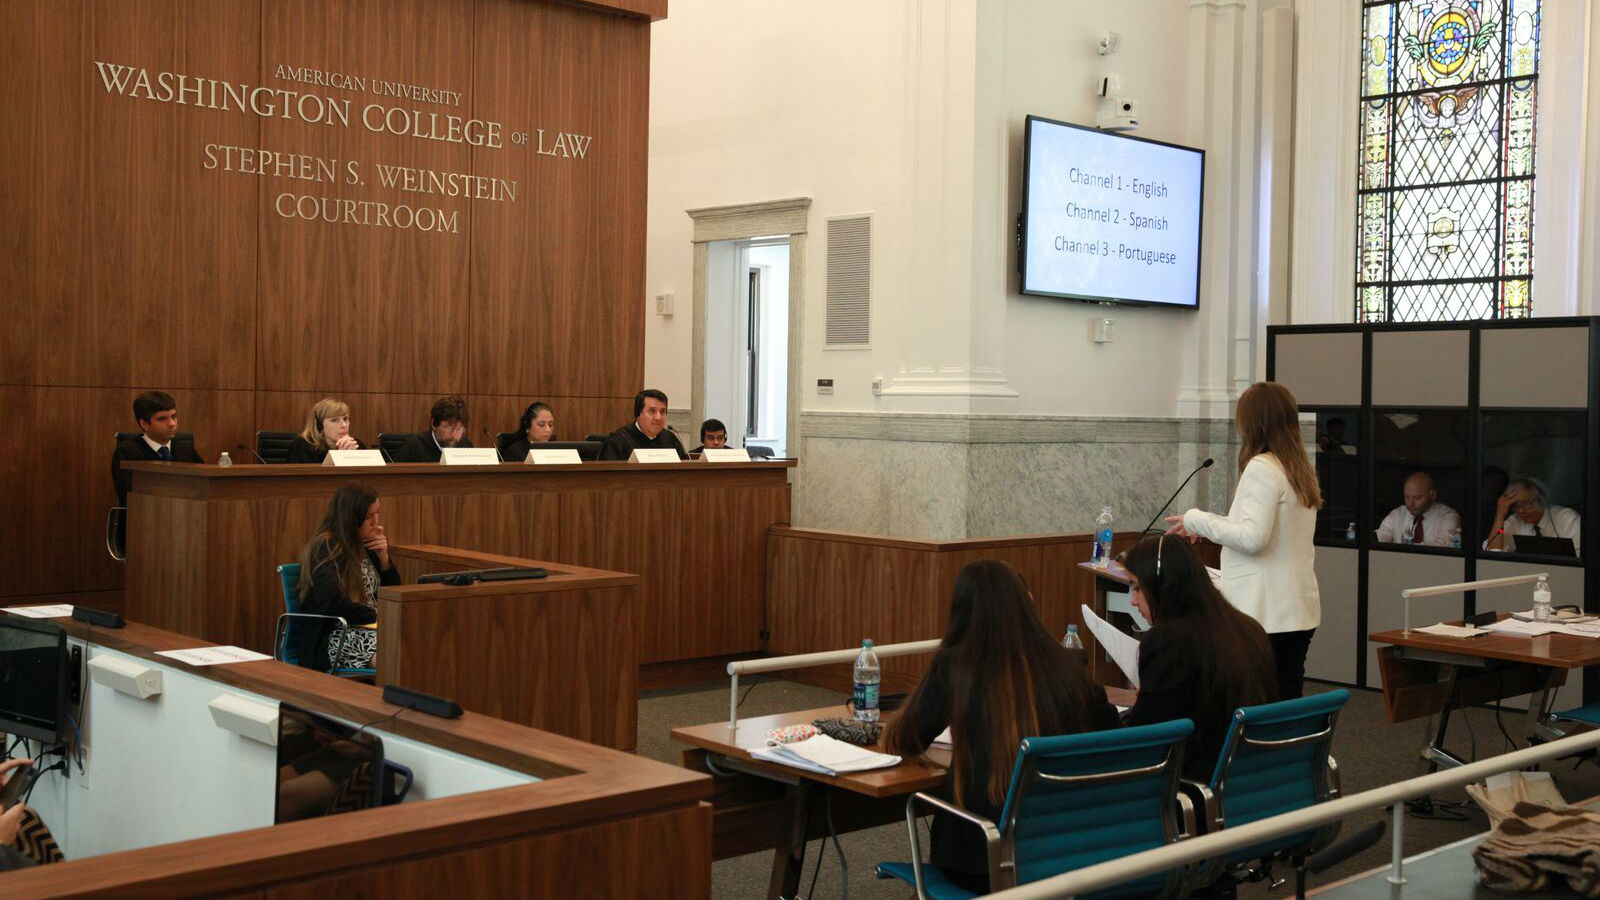 The 22nd Annual Inter-American Human Rights Moot